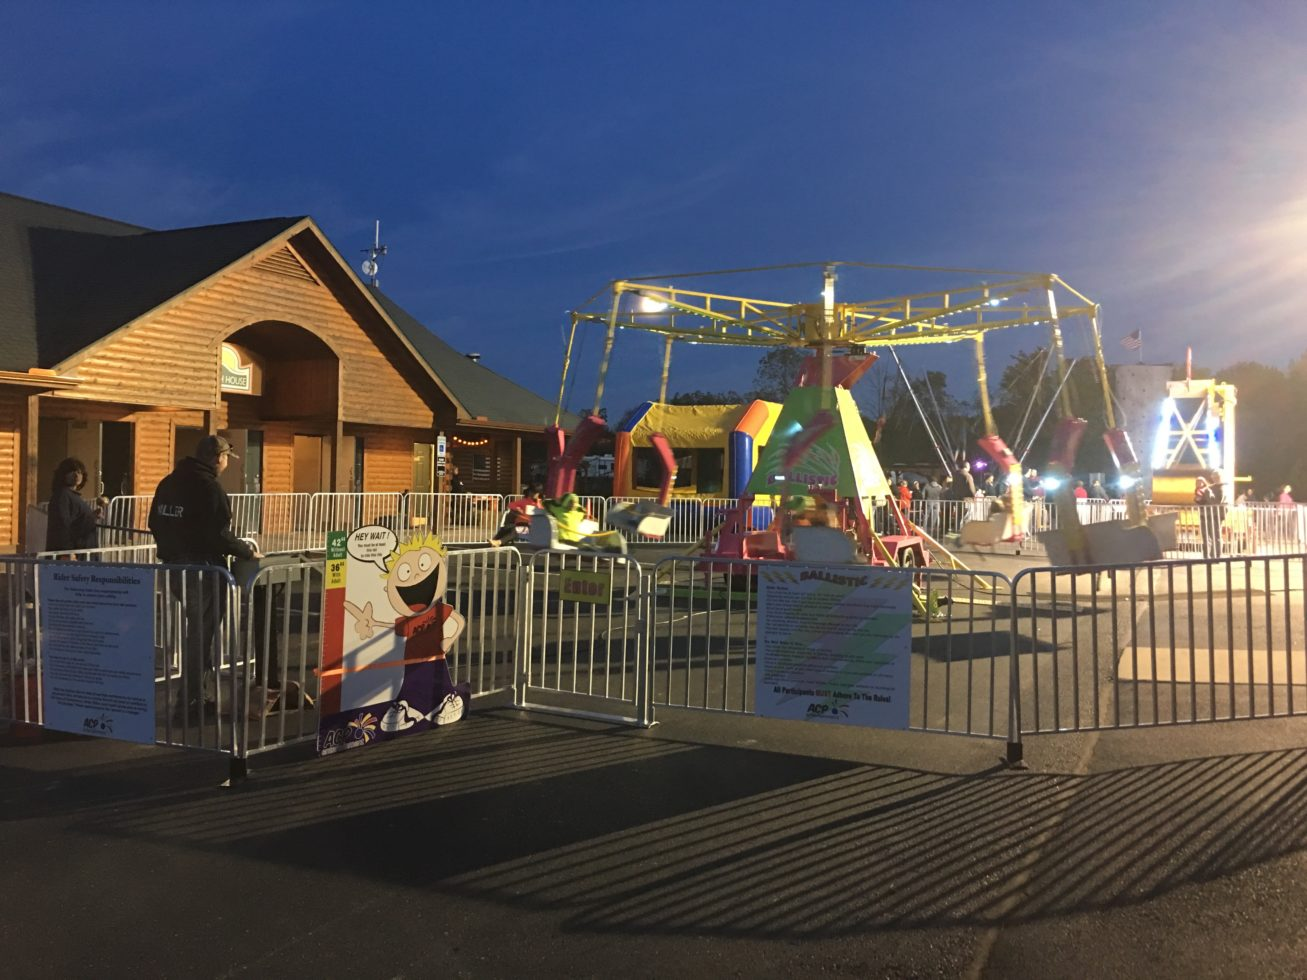 Ballistic ride at night at event